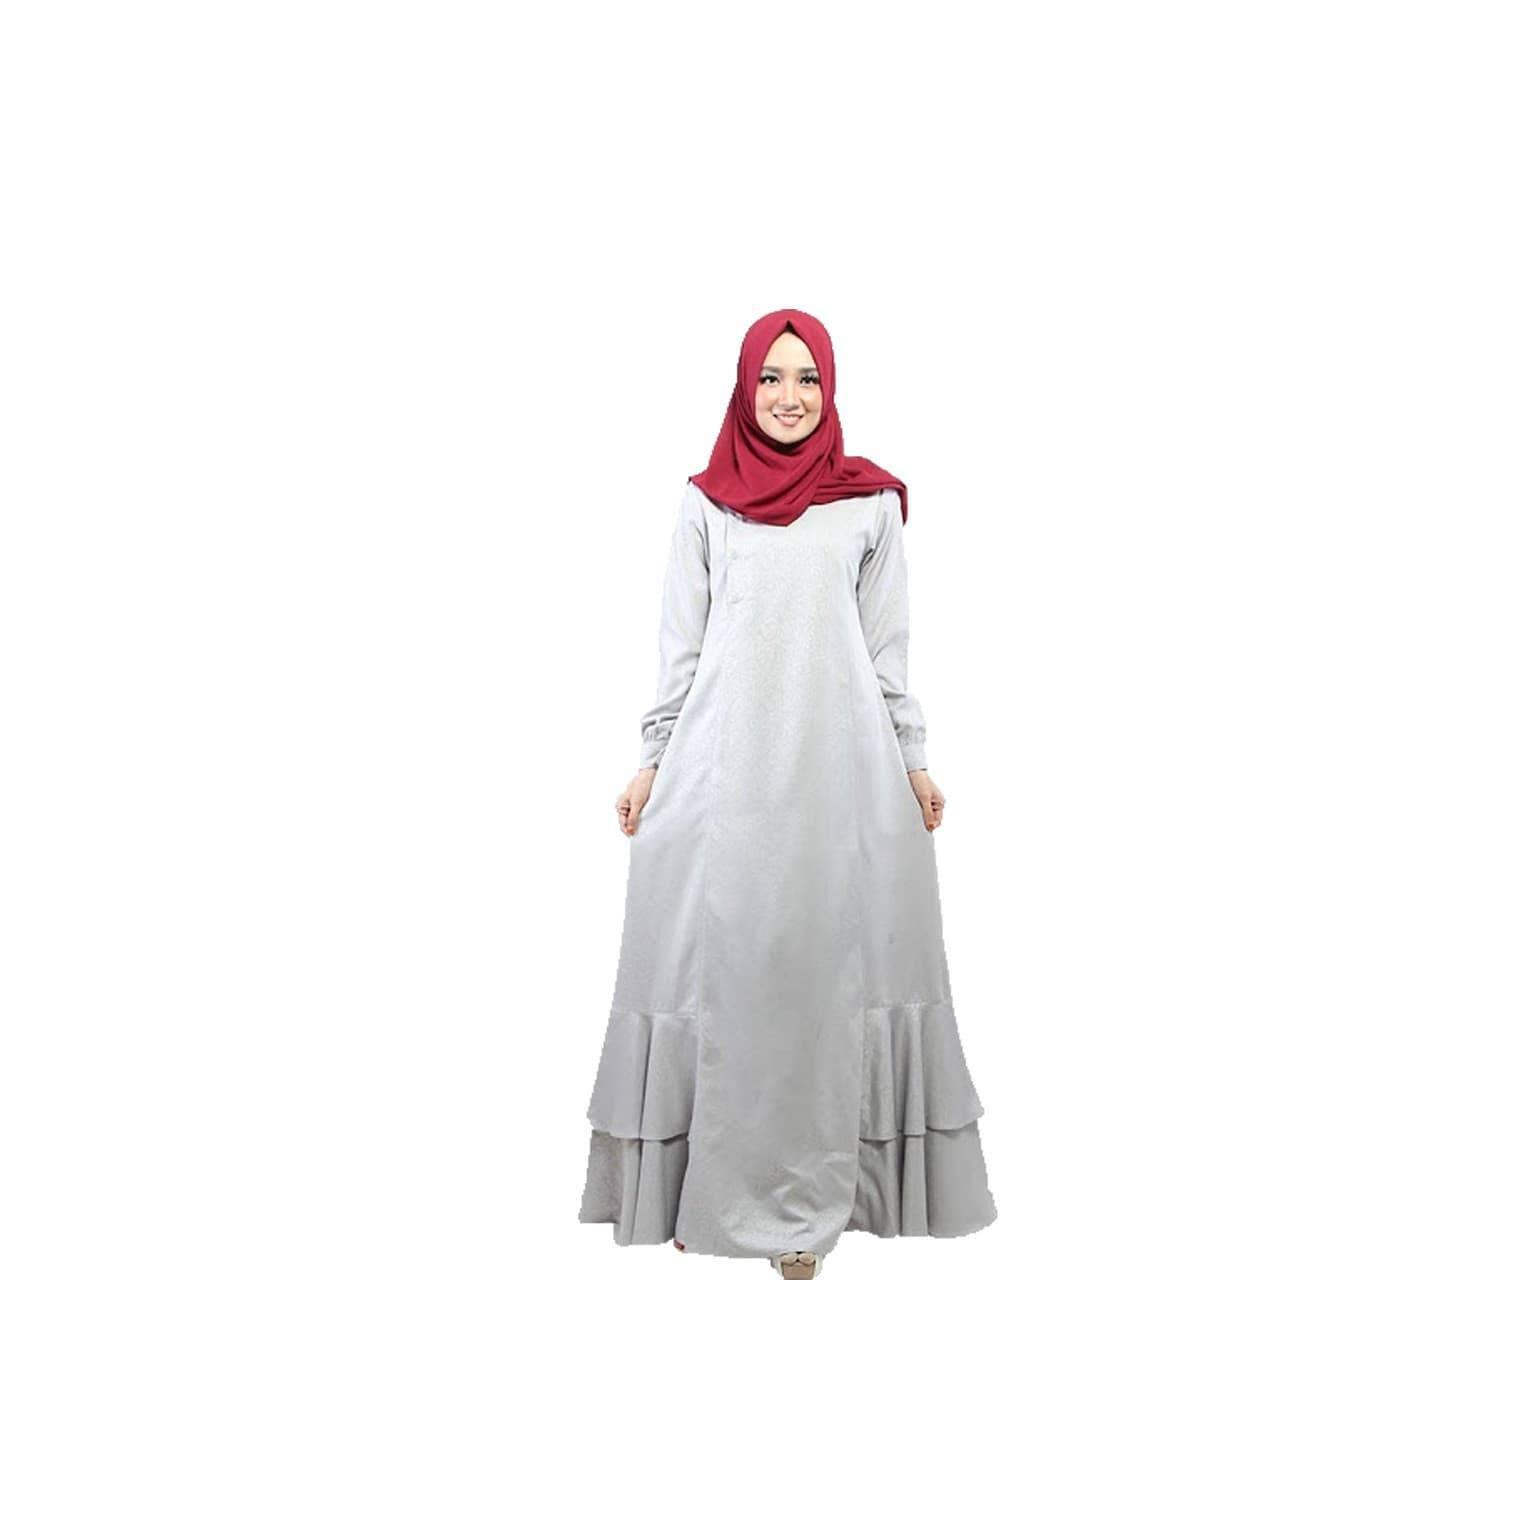 TERLARIS! Ethica Collcetion GAMIS FORMAL SIMPLE TERBARU SEPLY GISSEL